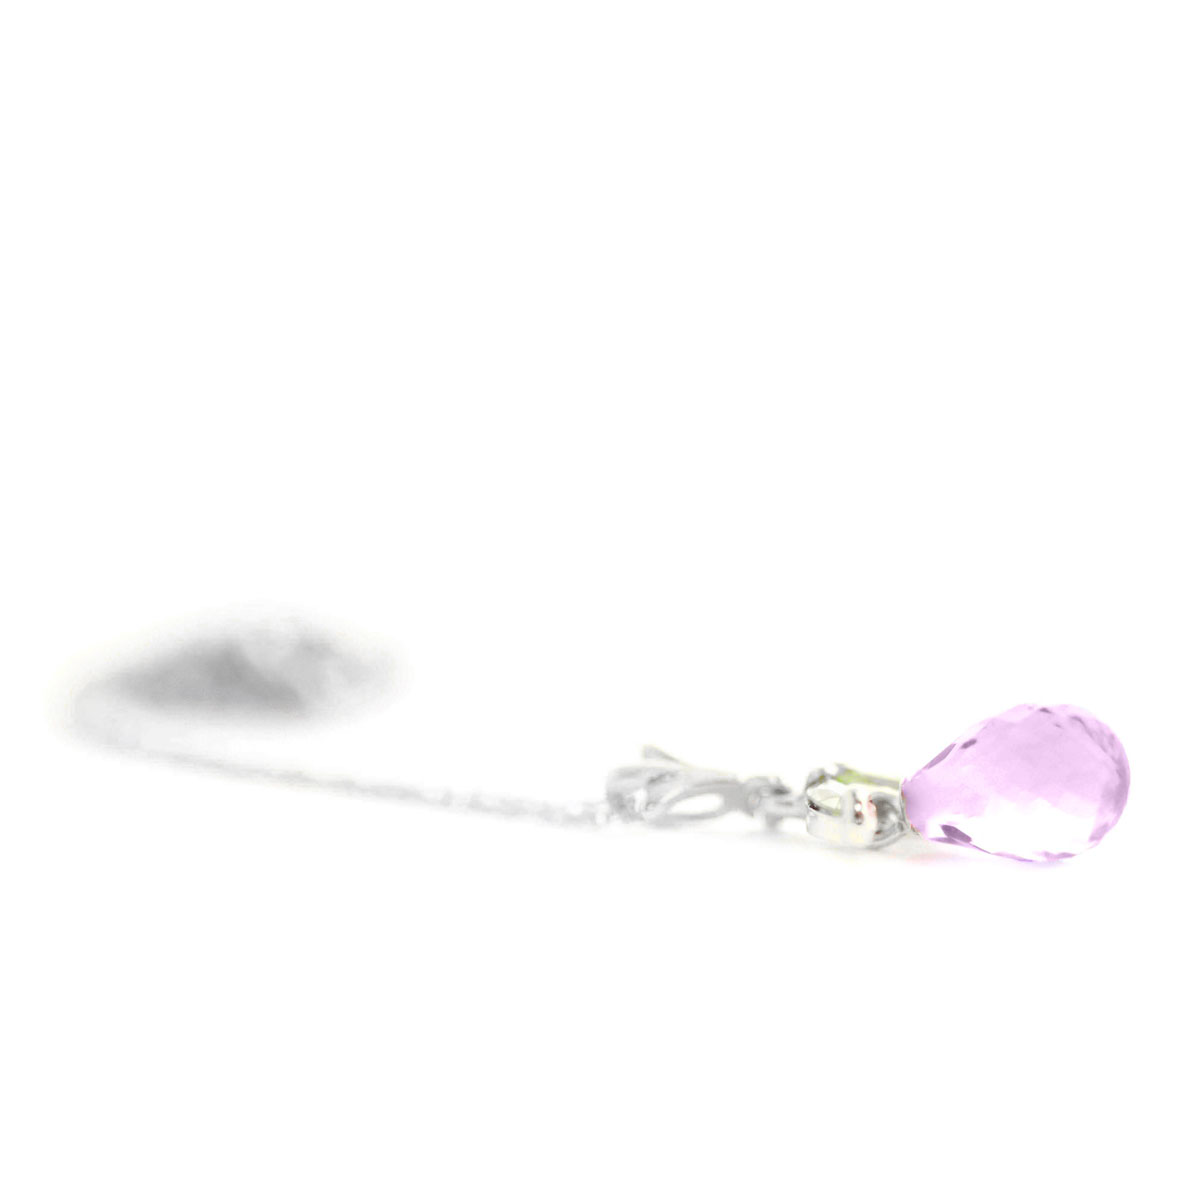 Amethyst & Peridot Snowdrop Pendant Necklace in 9ct White Gold